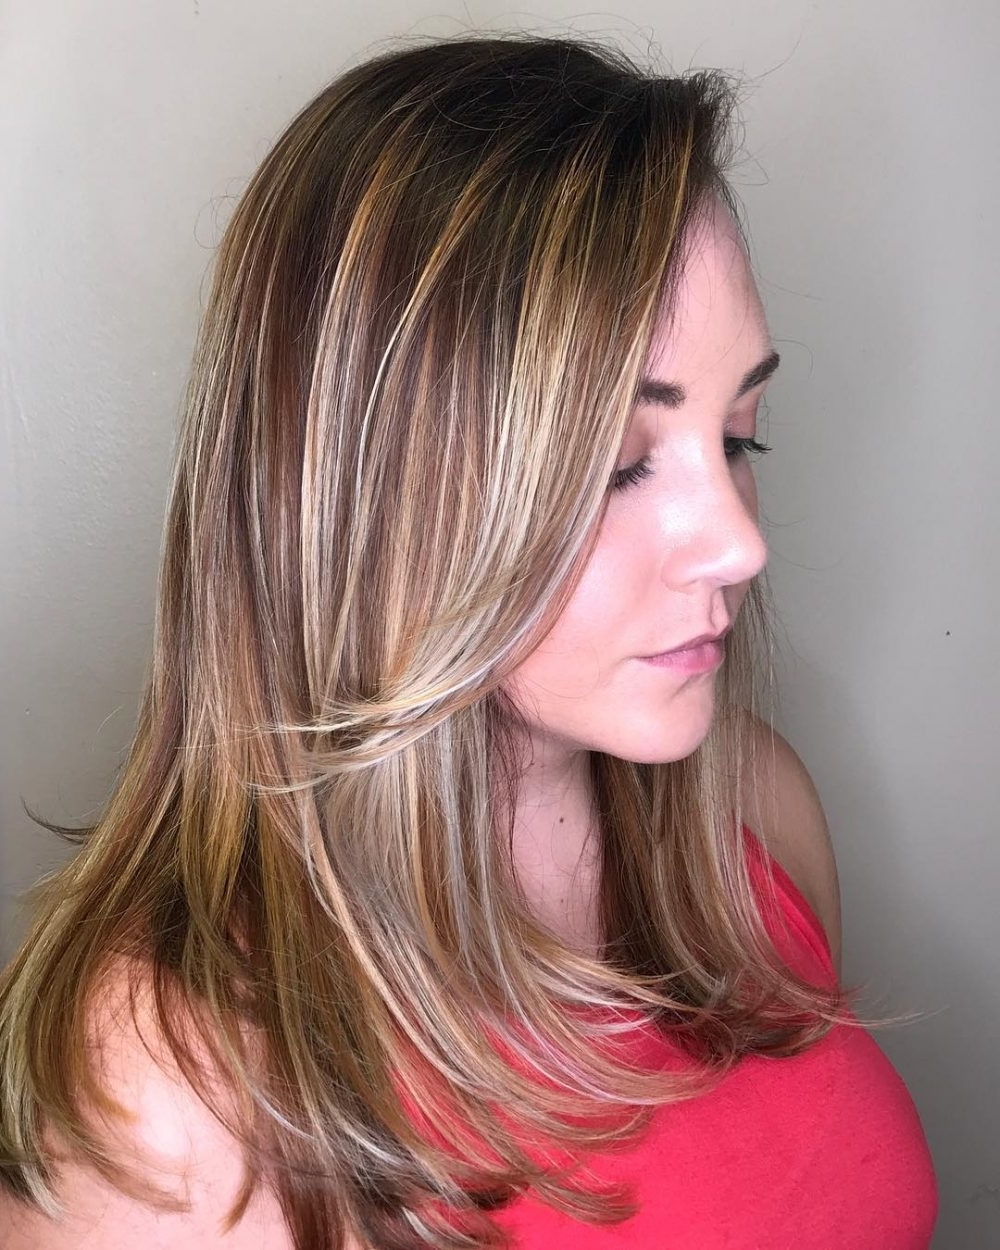 19 Cutest Side Bangs Hairstyle Ideas For 2018 Inside Well Known Side Swept Warm Blonde Hairstyles (View 2 of 20)